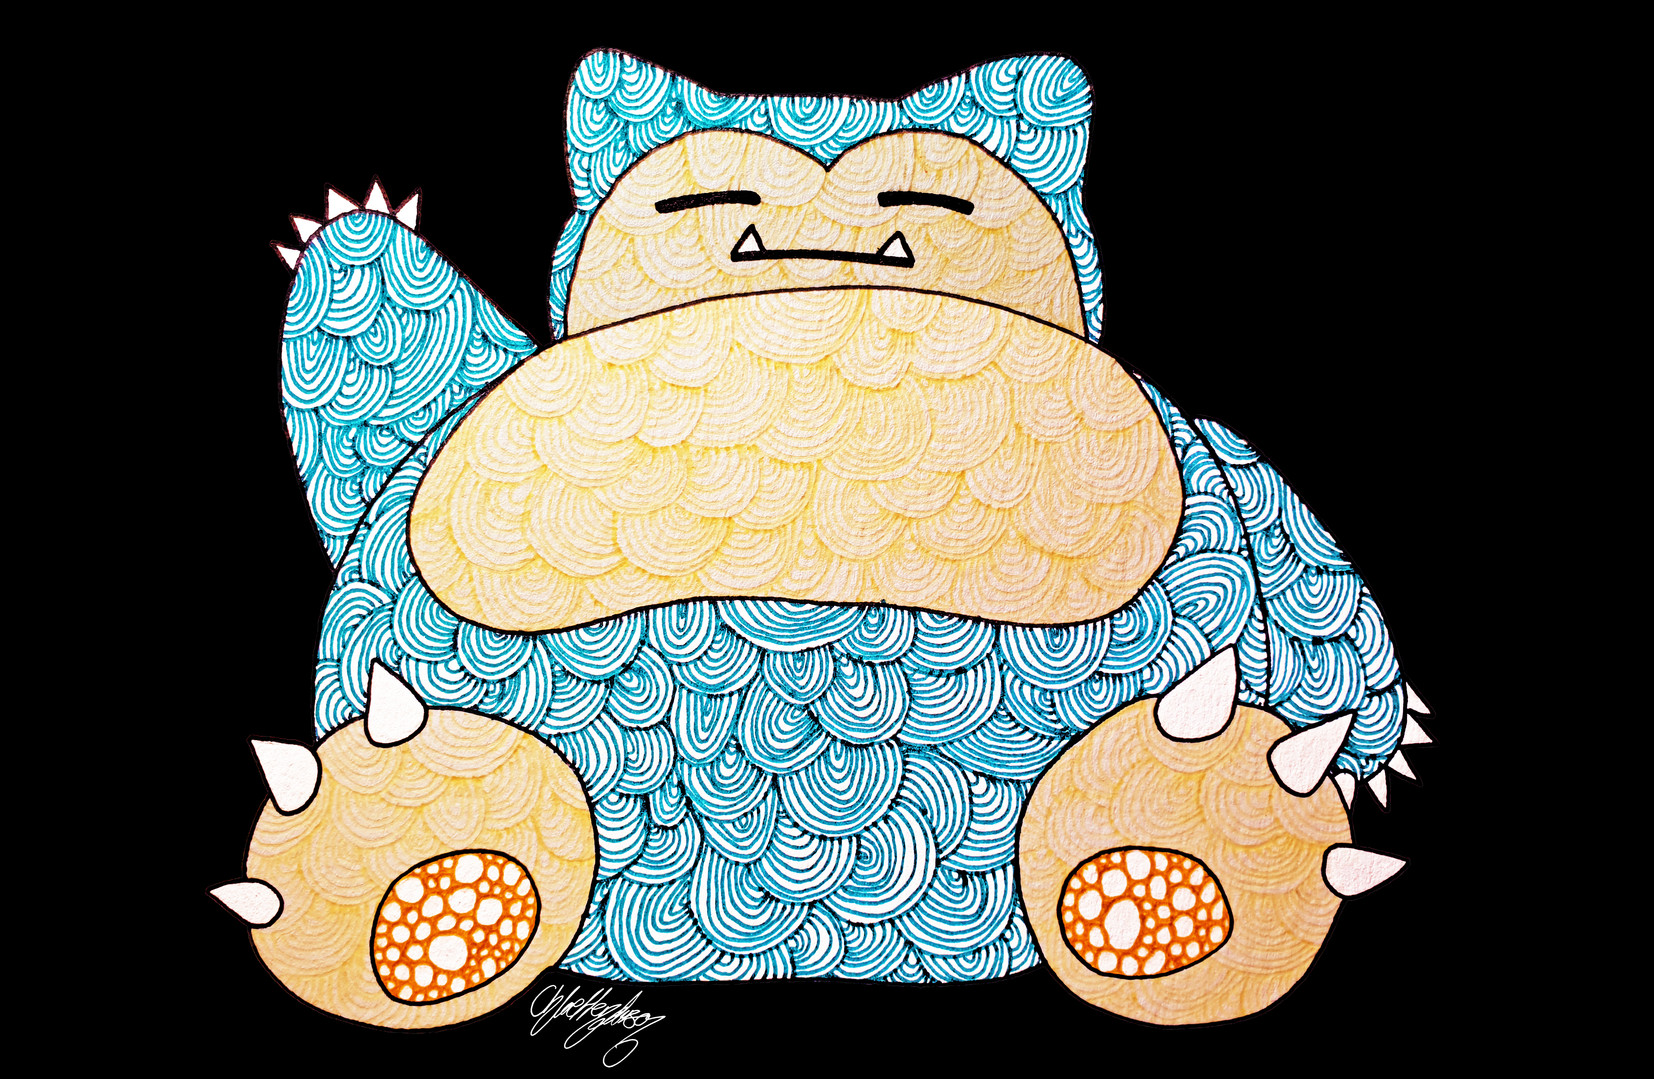 7. Exhausted Snorlax